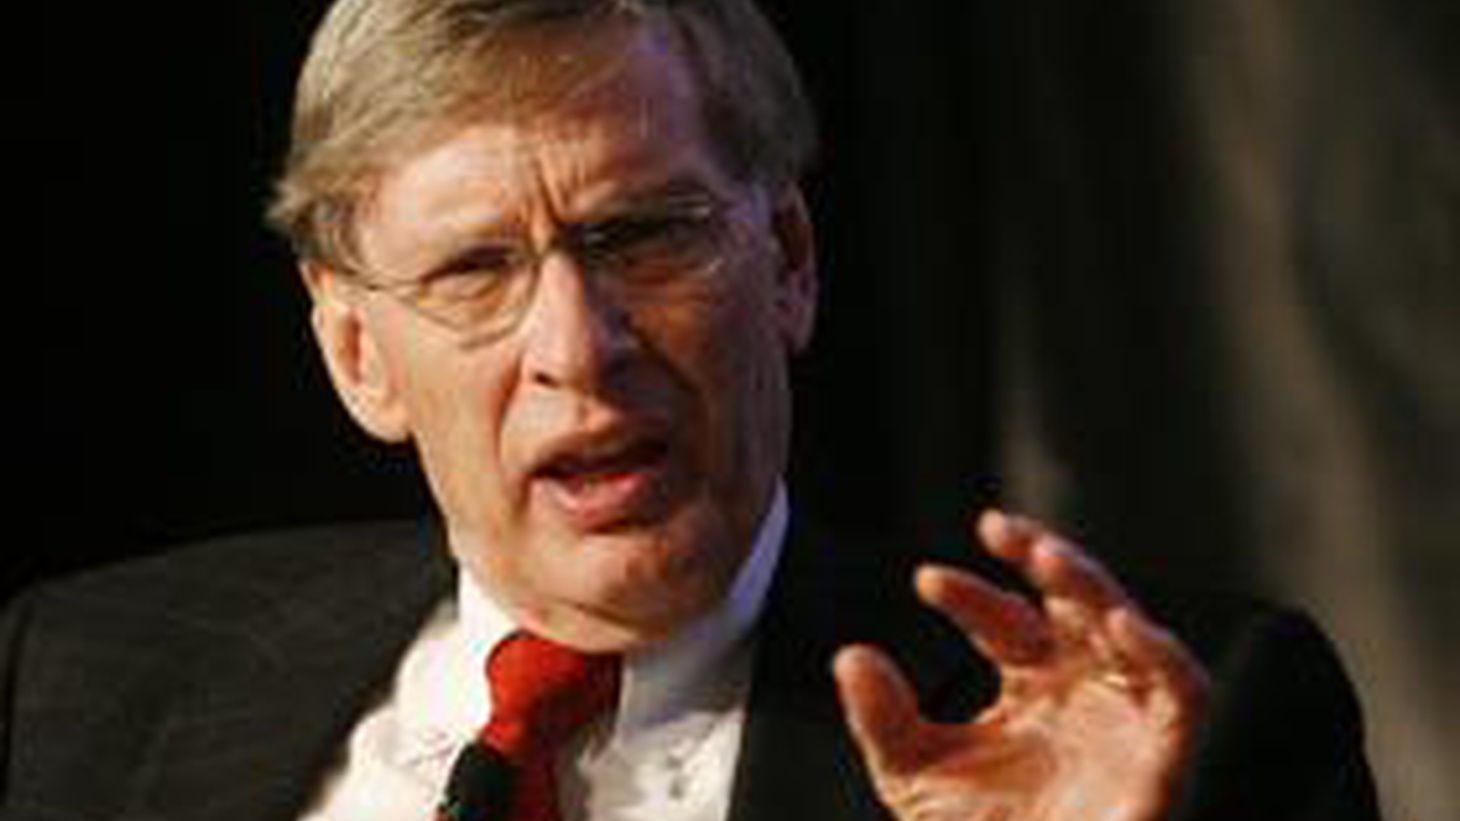 Baseball's Commissioner Bud Selig, in the face of Yankee Alex Rodriguez now admitting to using performance enhancing drugs over a two-year period, says he will consider suspending A-Rod. Selig also states that he will ponder taking away Barry Bonds' all-time home run record and reinstating that revered top dog position to Hank Aaron, should Bonds be found guilty of using performance drugs in his early March trial...